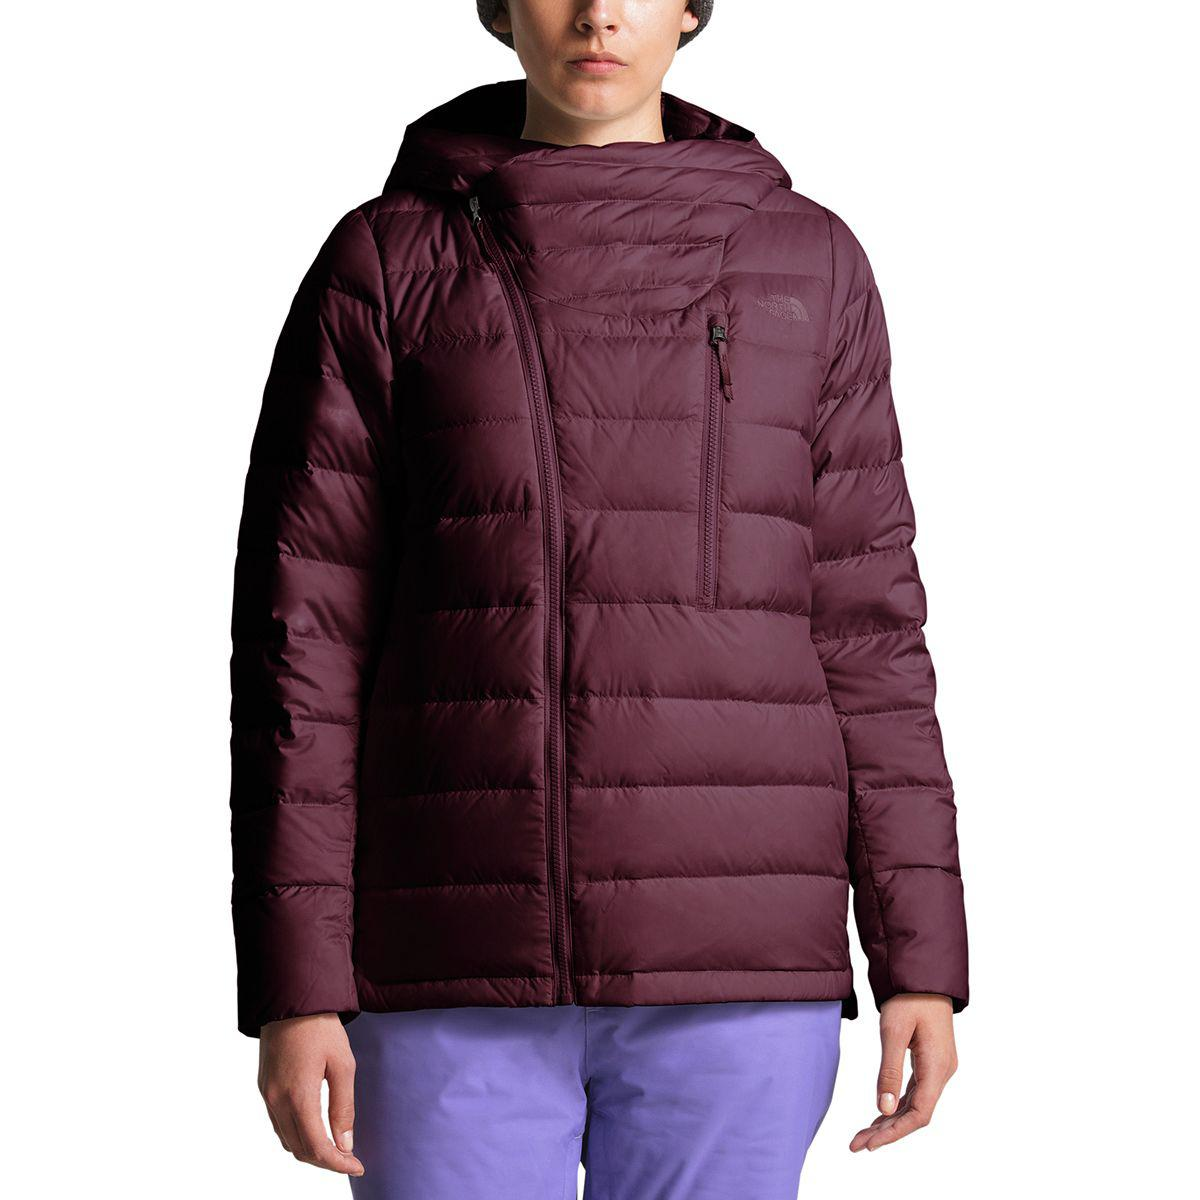 365cac4fc689 Lyst - The North Face Niche Down Jacket in Purple